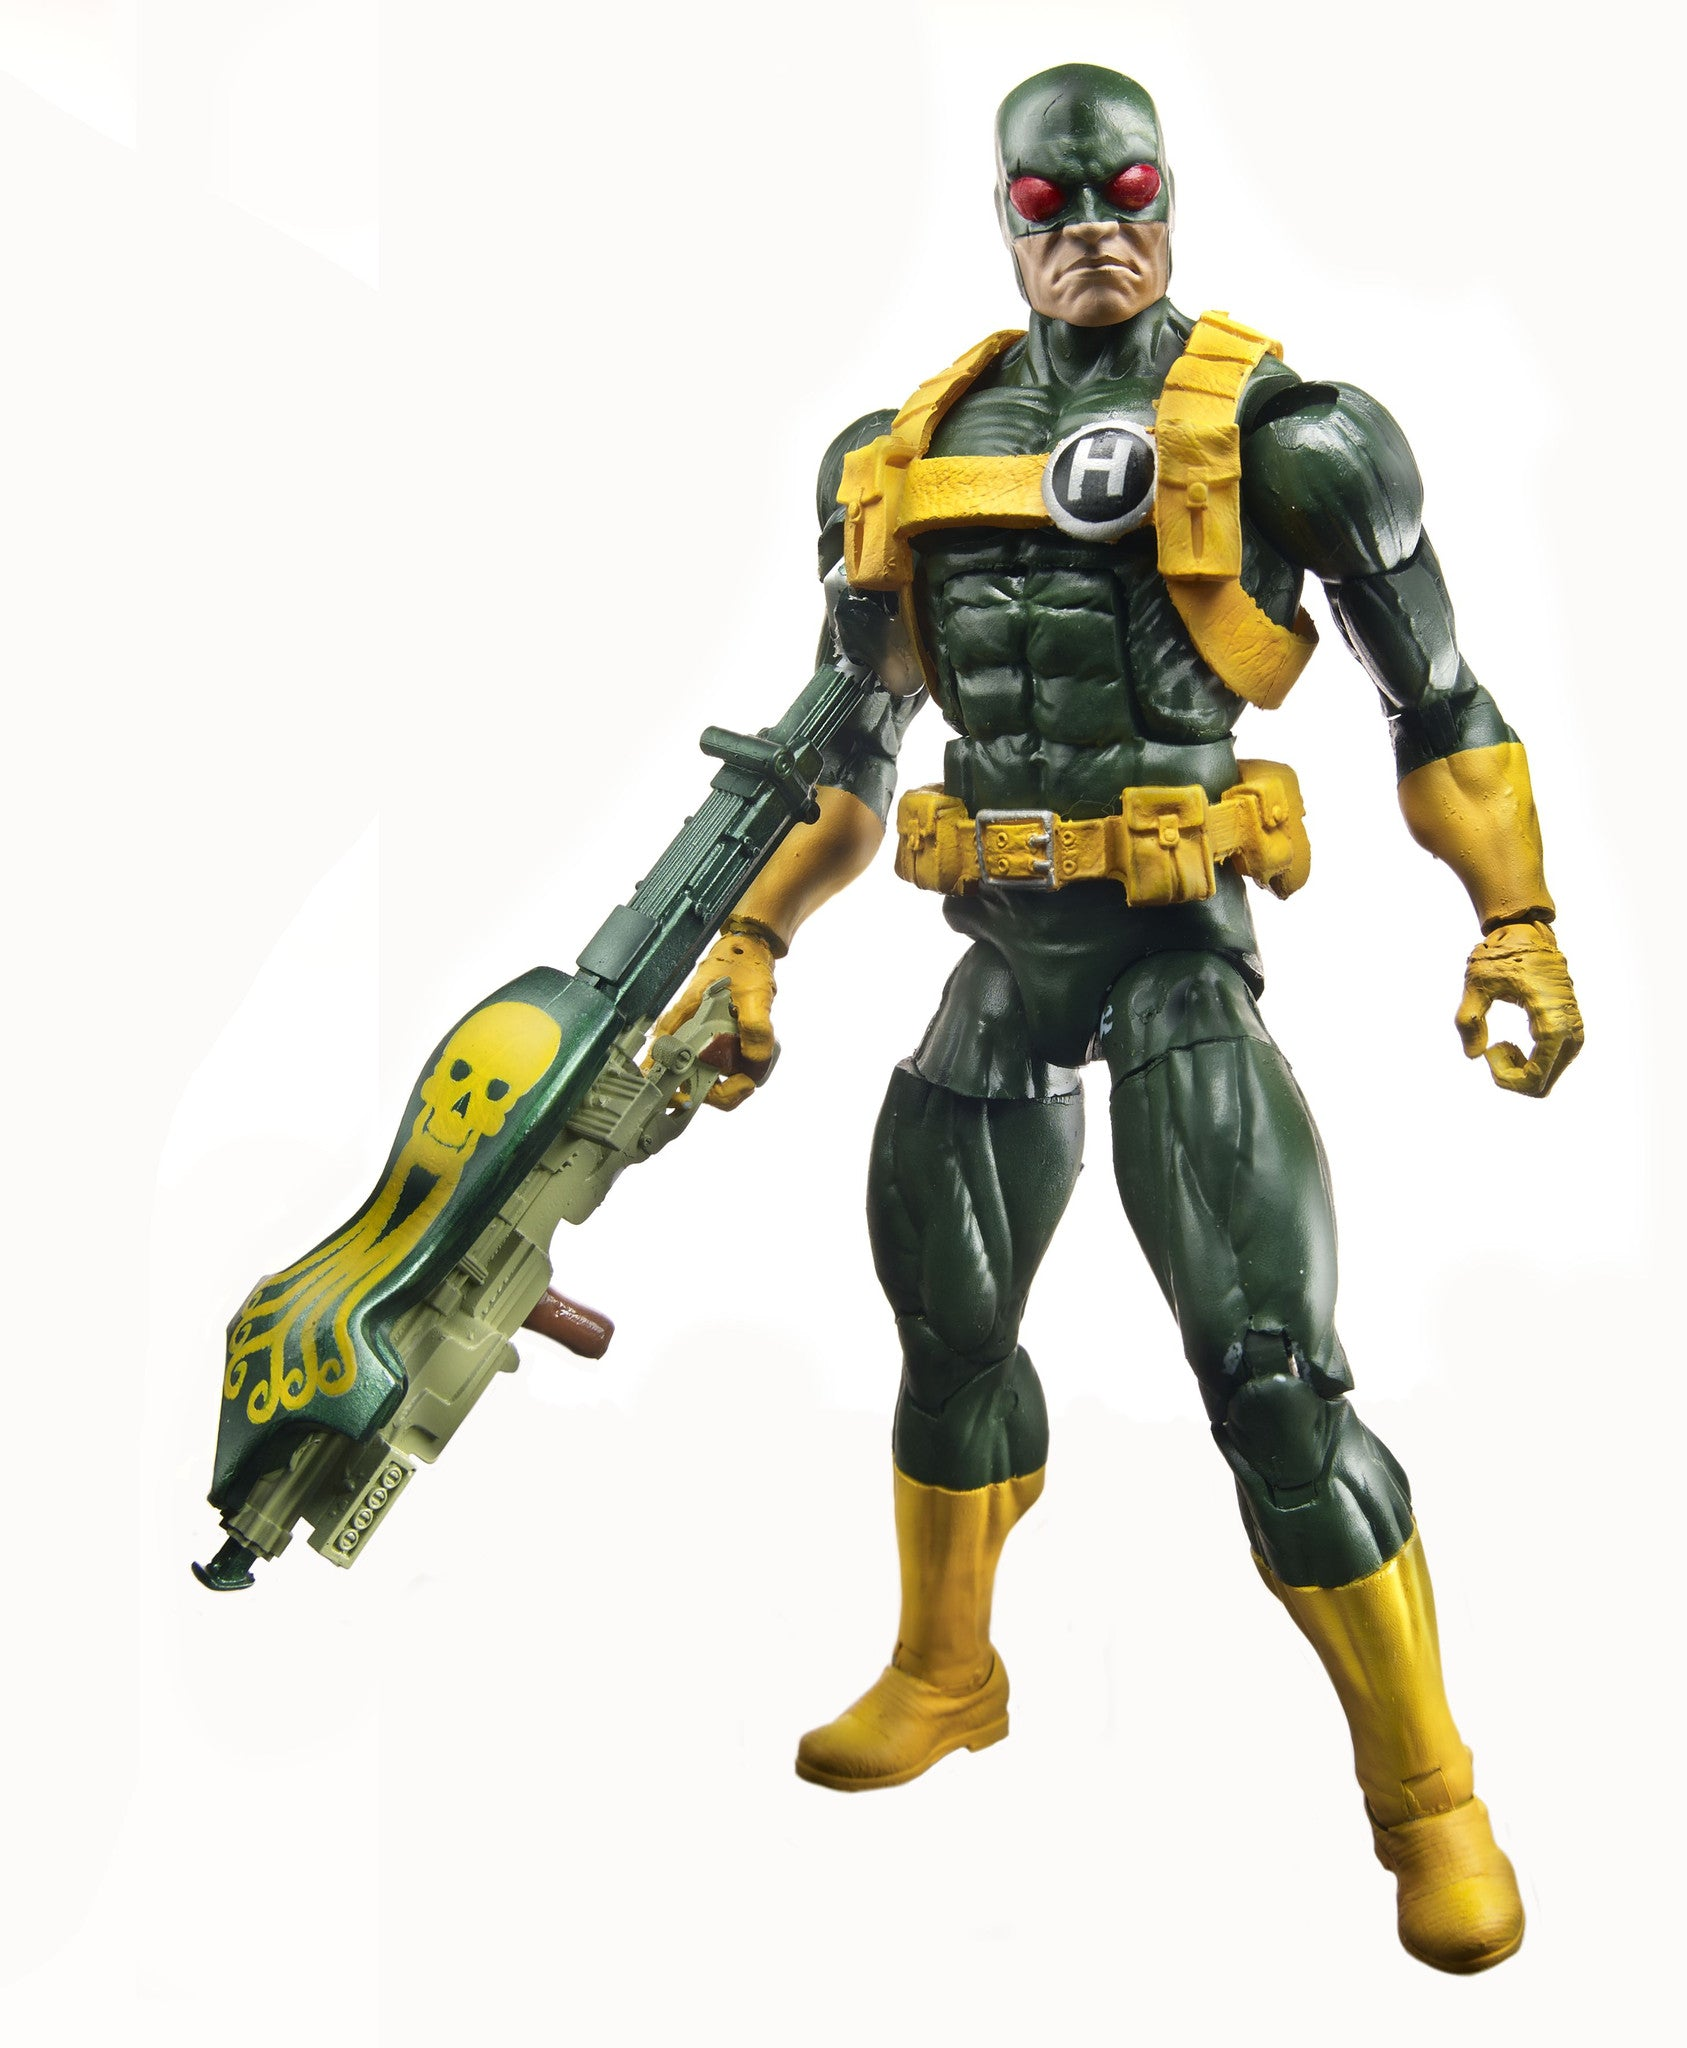 Marvel Legends - Mandroid BAF - Captain America - Agents of Hydra - Modern Green Hydra Soldier (A6223)